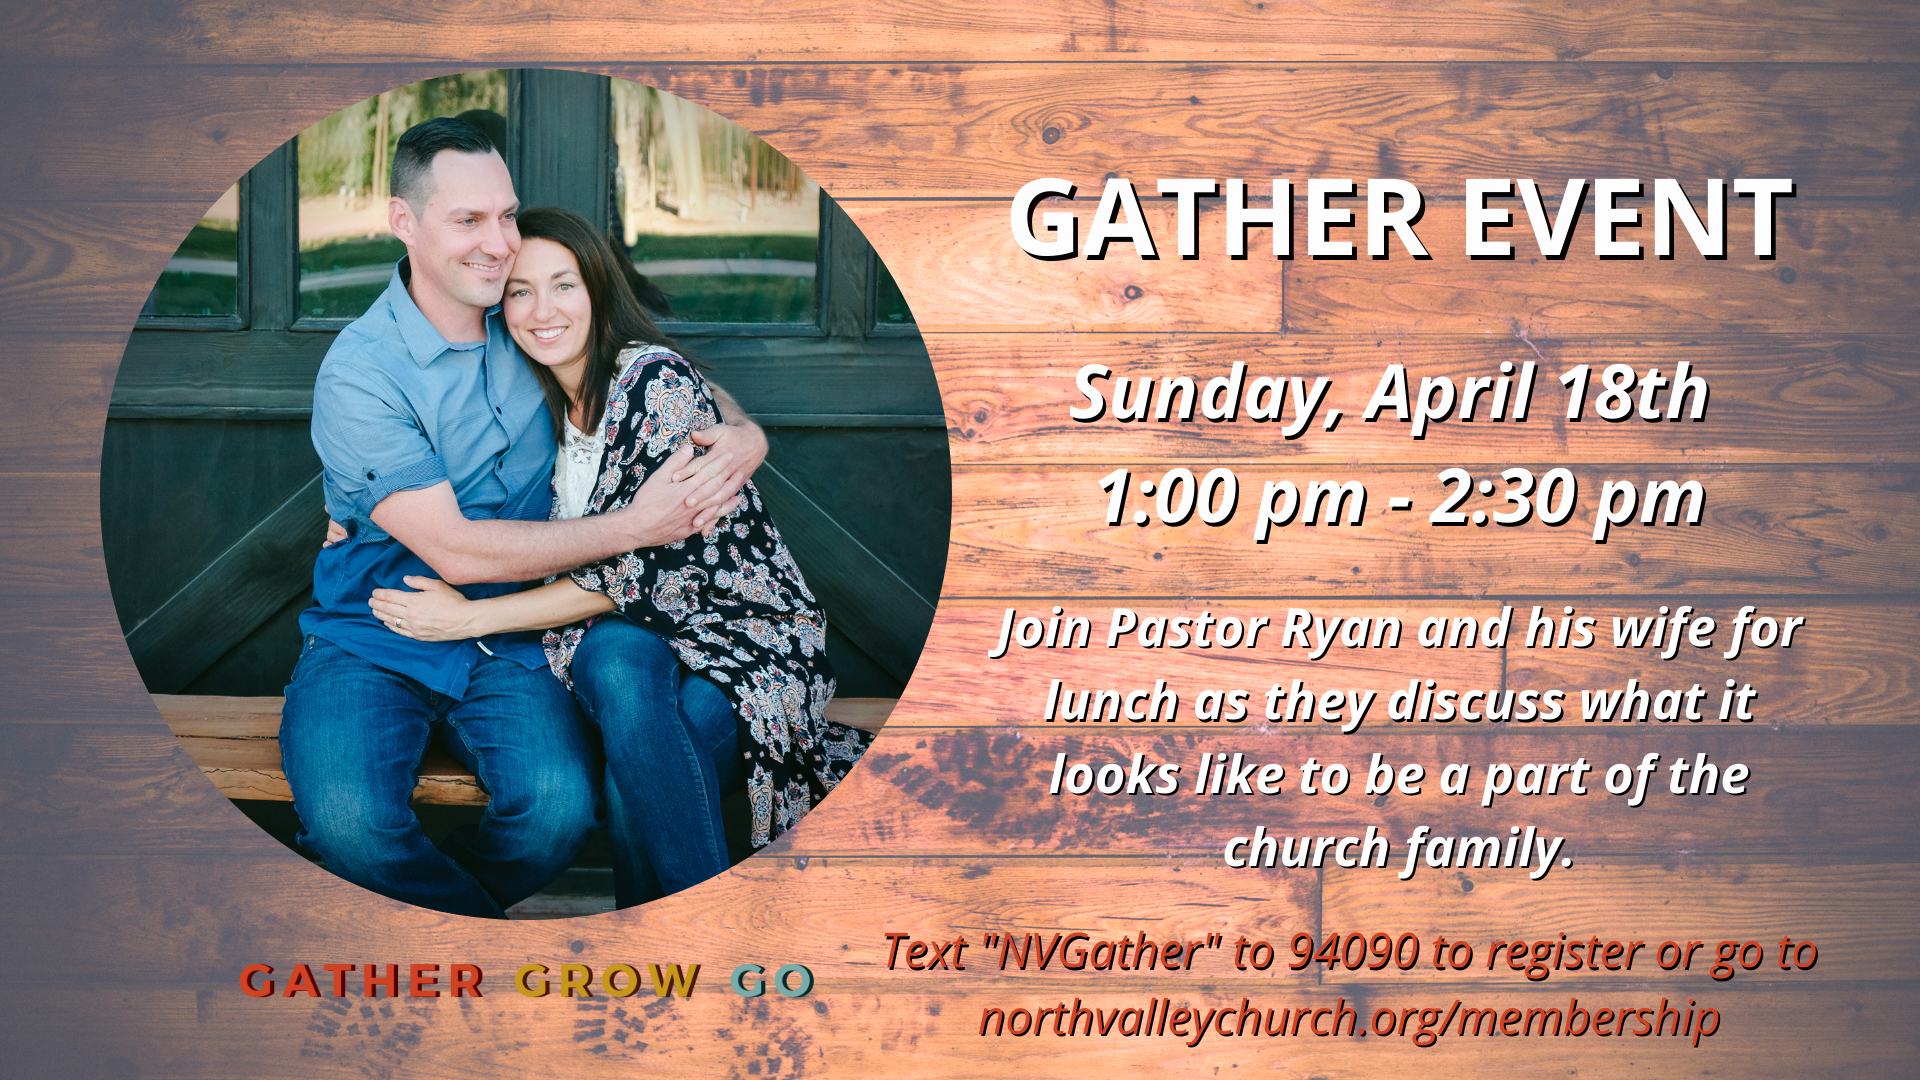 Gather Event Featured Event (2) image